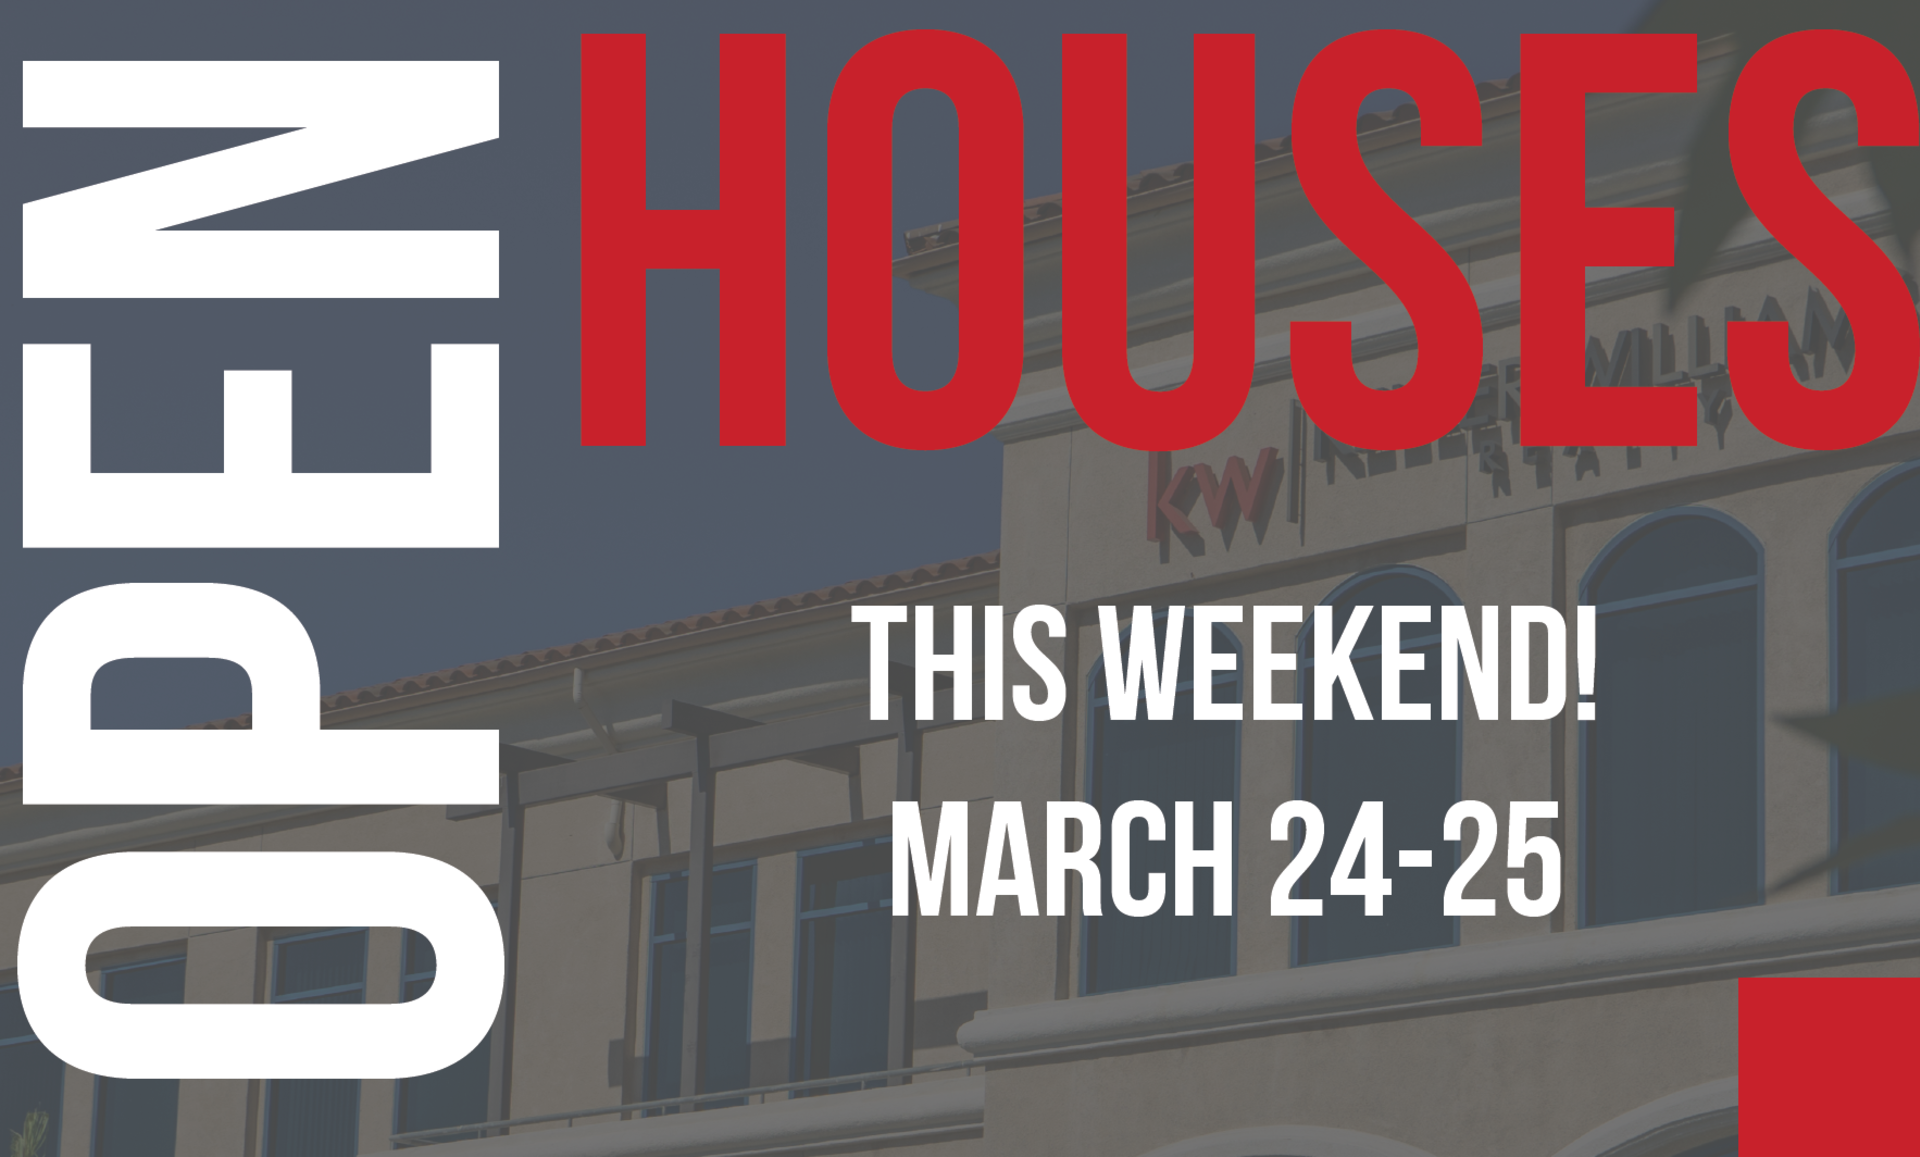 Open Houses This Weekend March 24-25